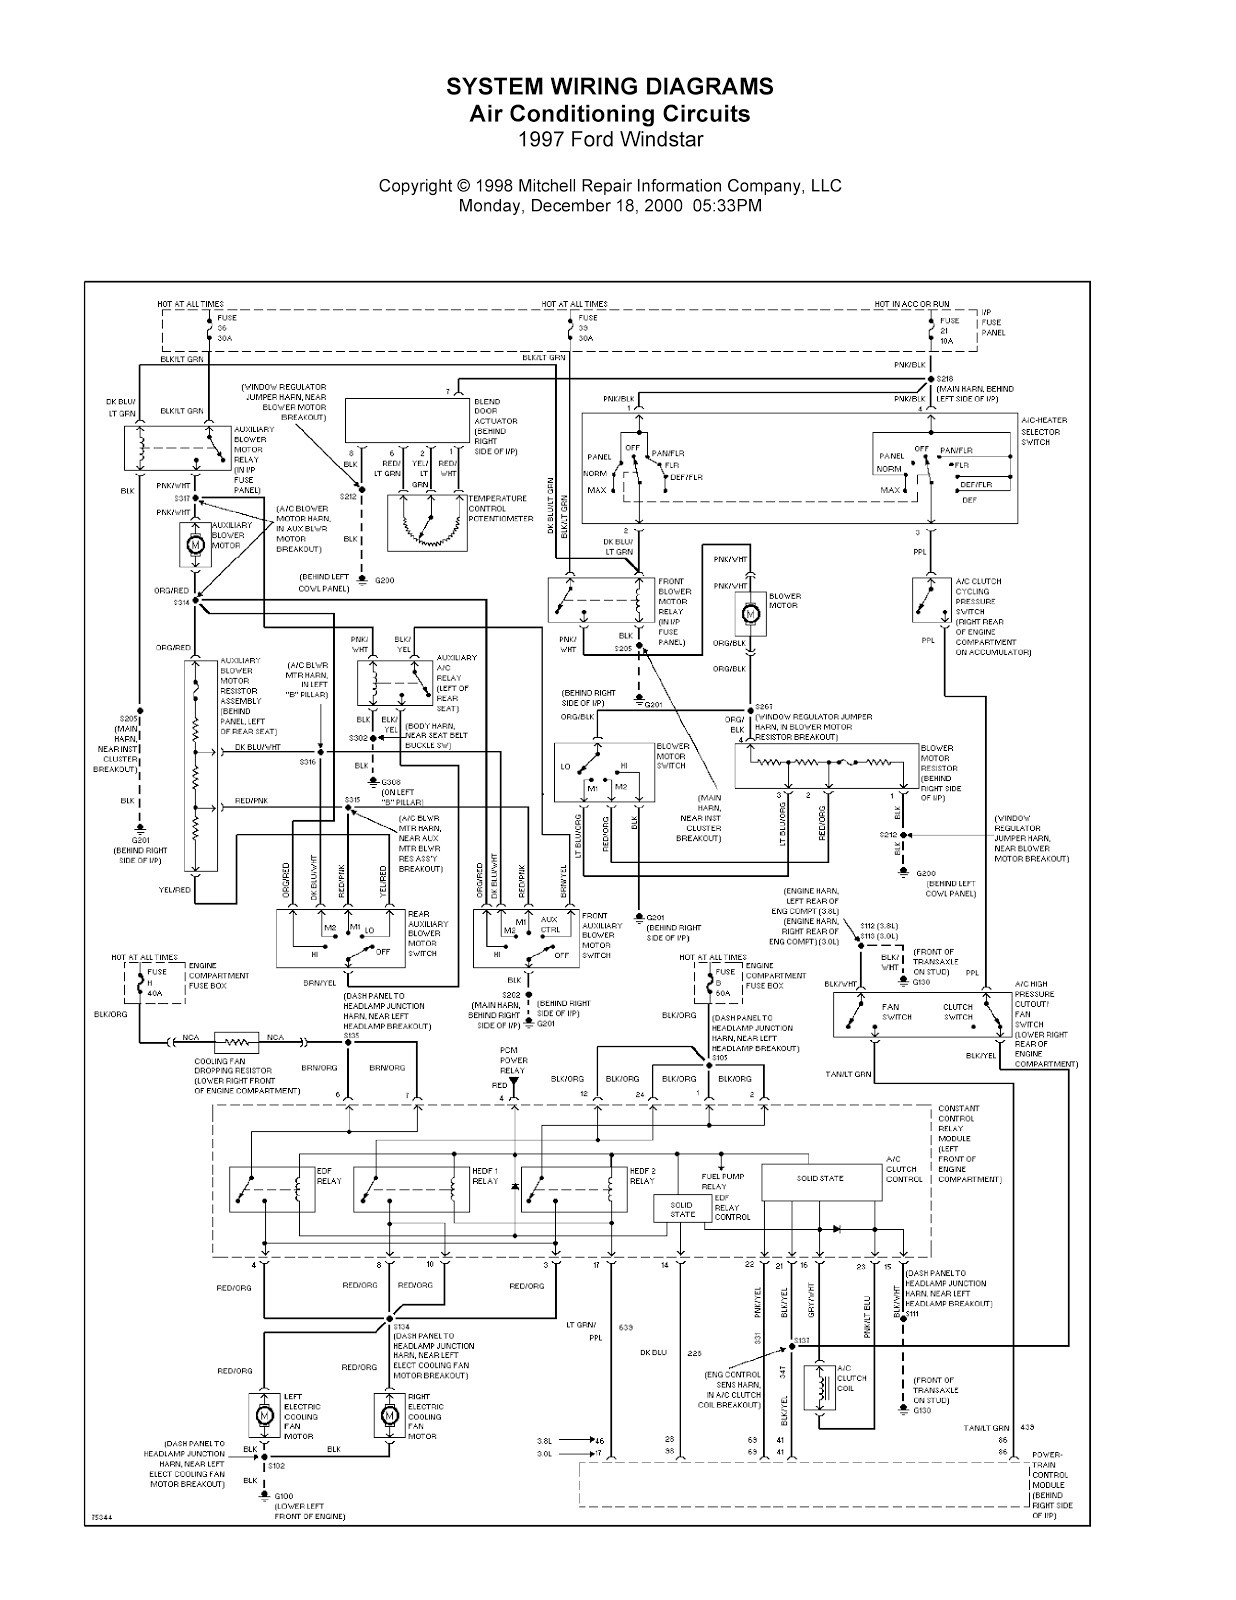 1999 ford Escort Wiring Diagram Awesome 1997 ford Escort Wiring Diagram S Everything You Need Of 1999 ford Escort Wiring Diagram